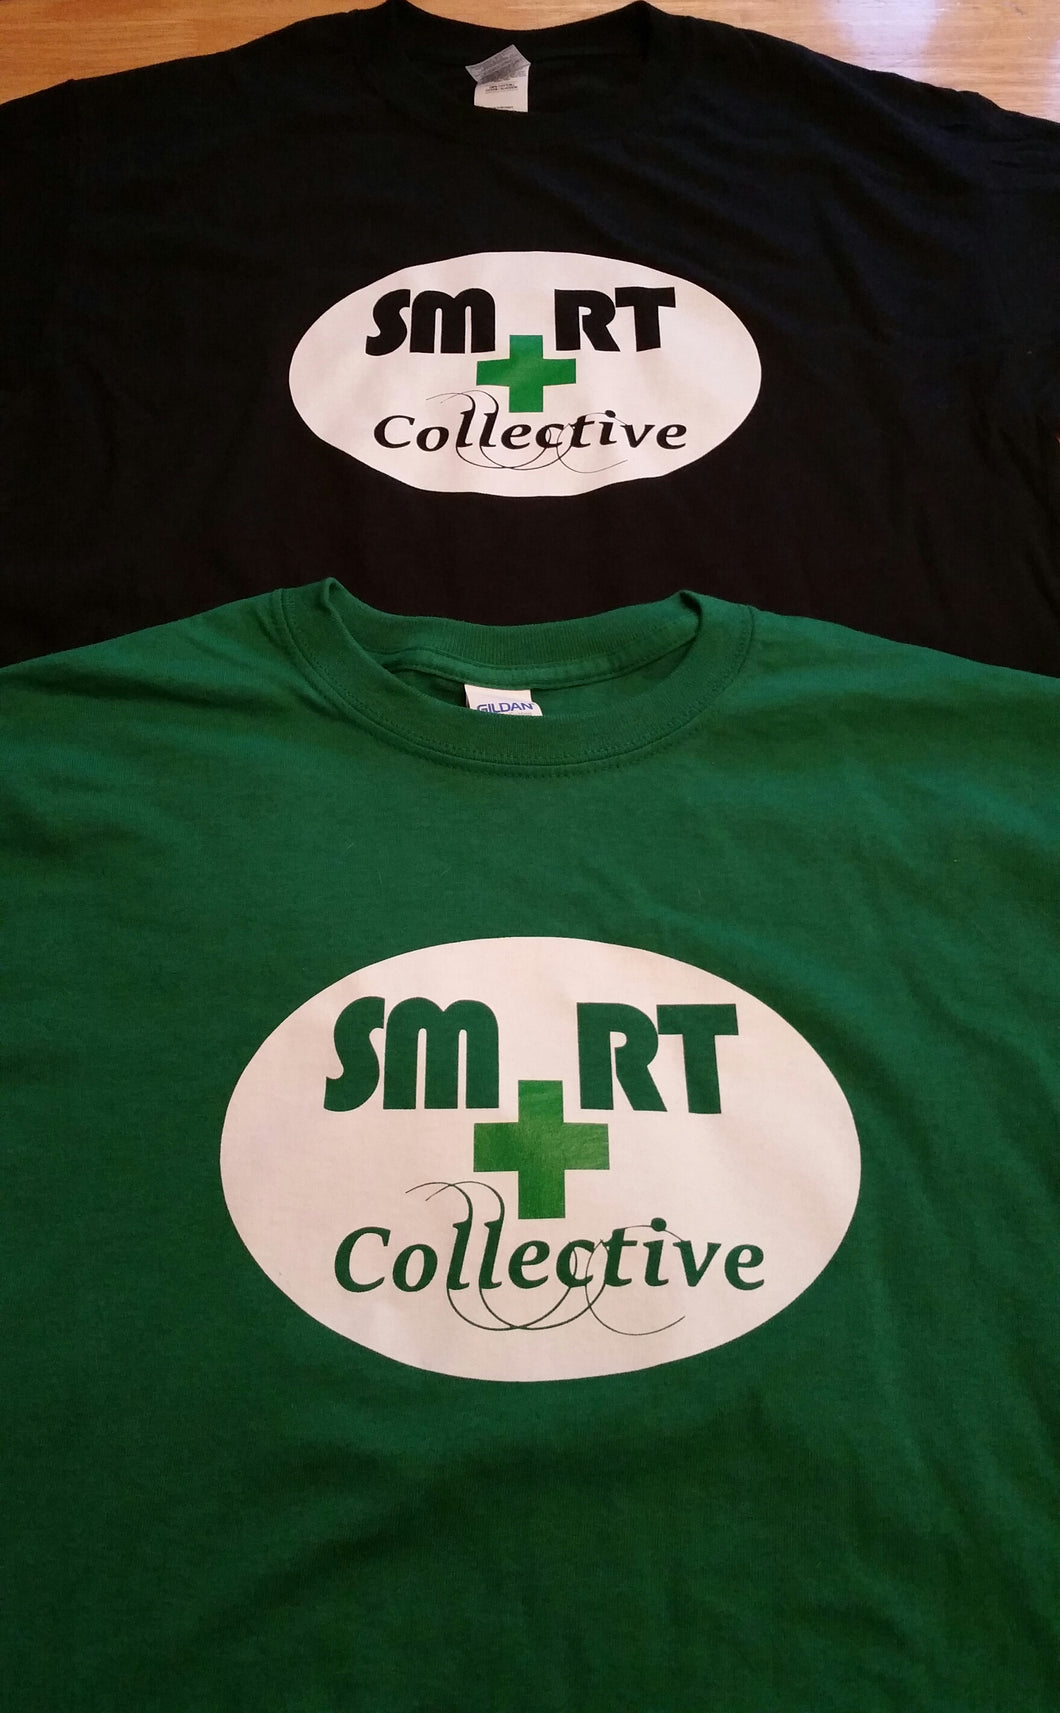 NEW SMRT Collective   T-Shirts! $20 donation includes shipping!